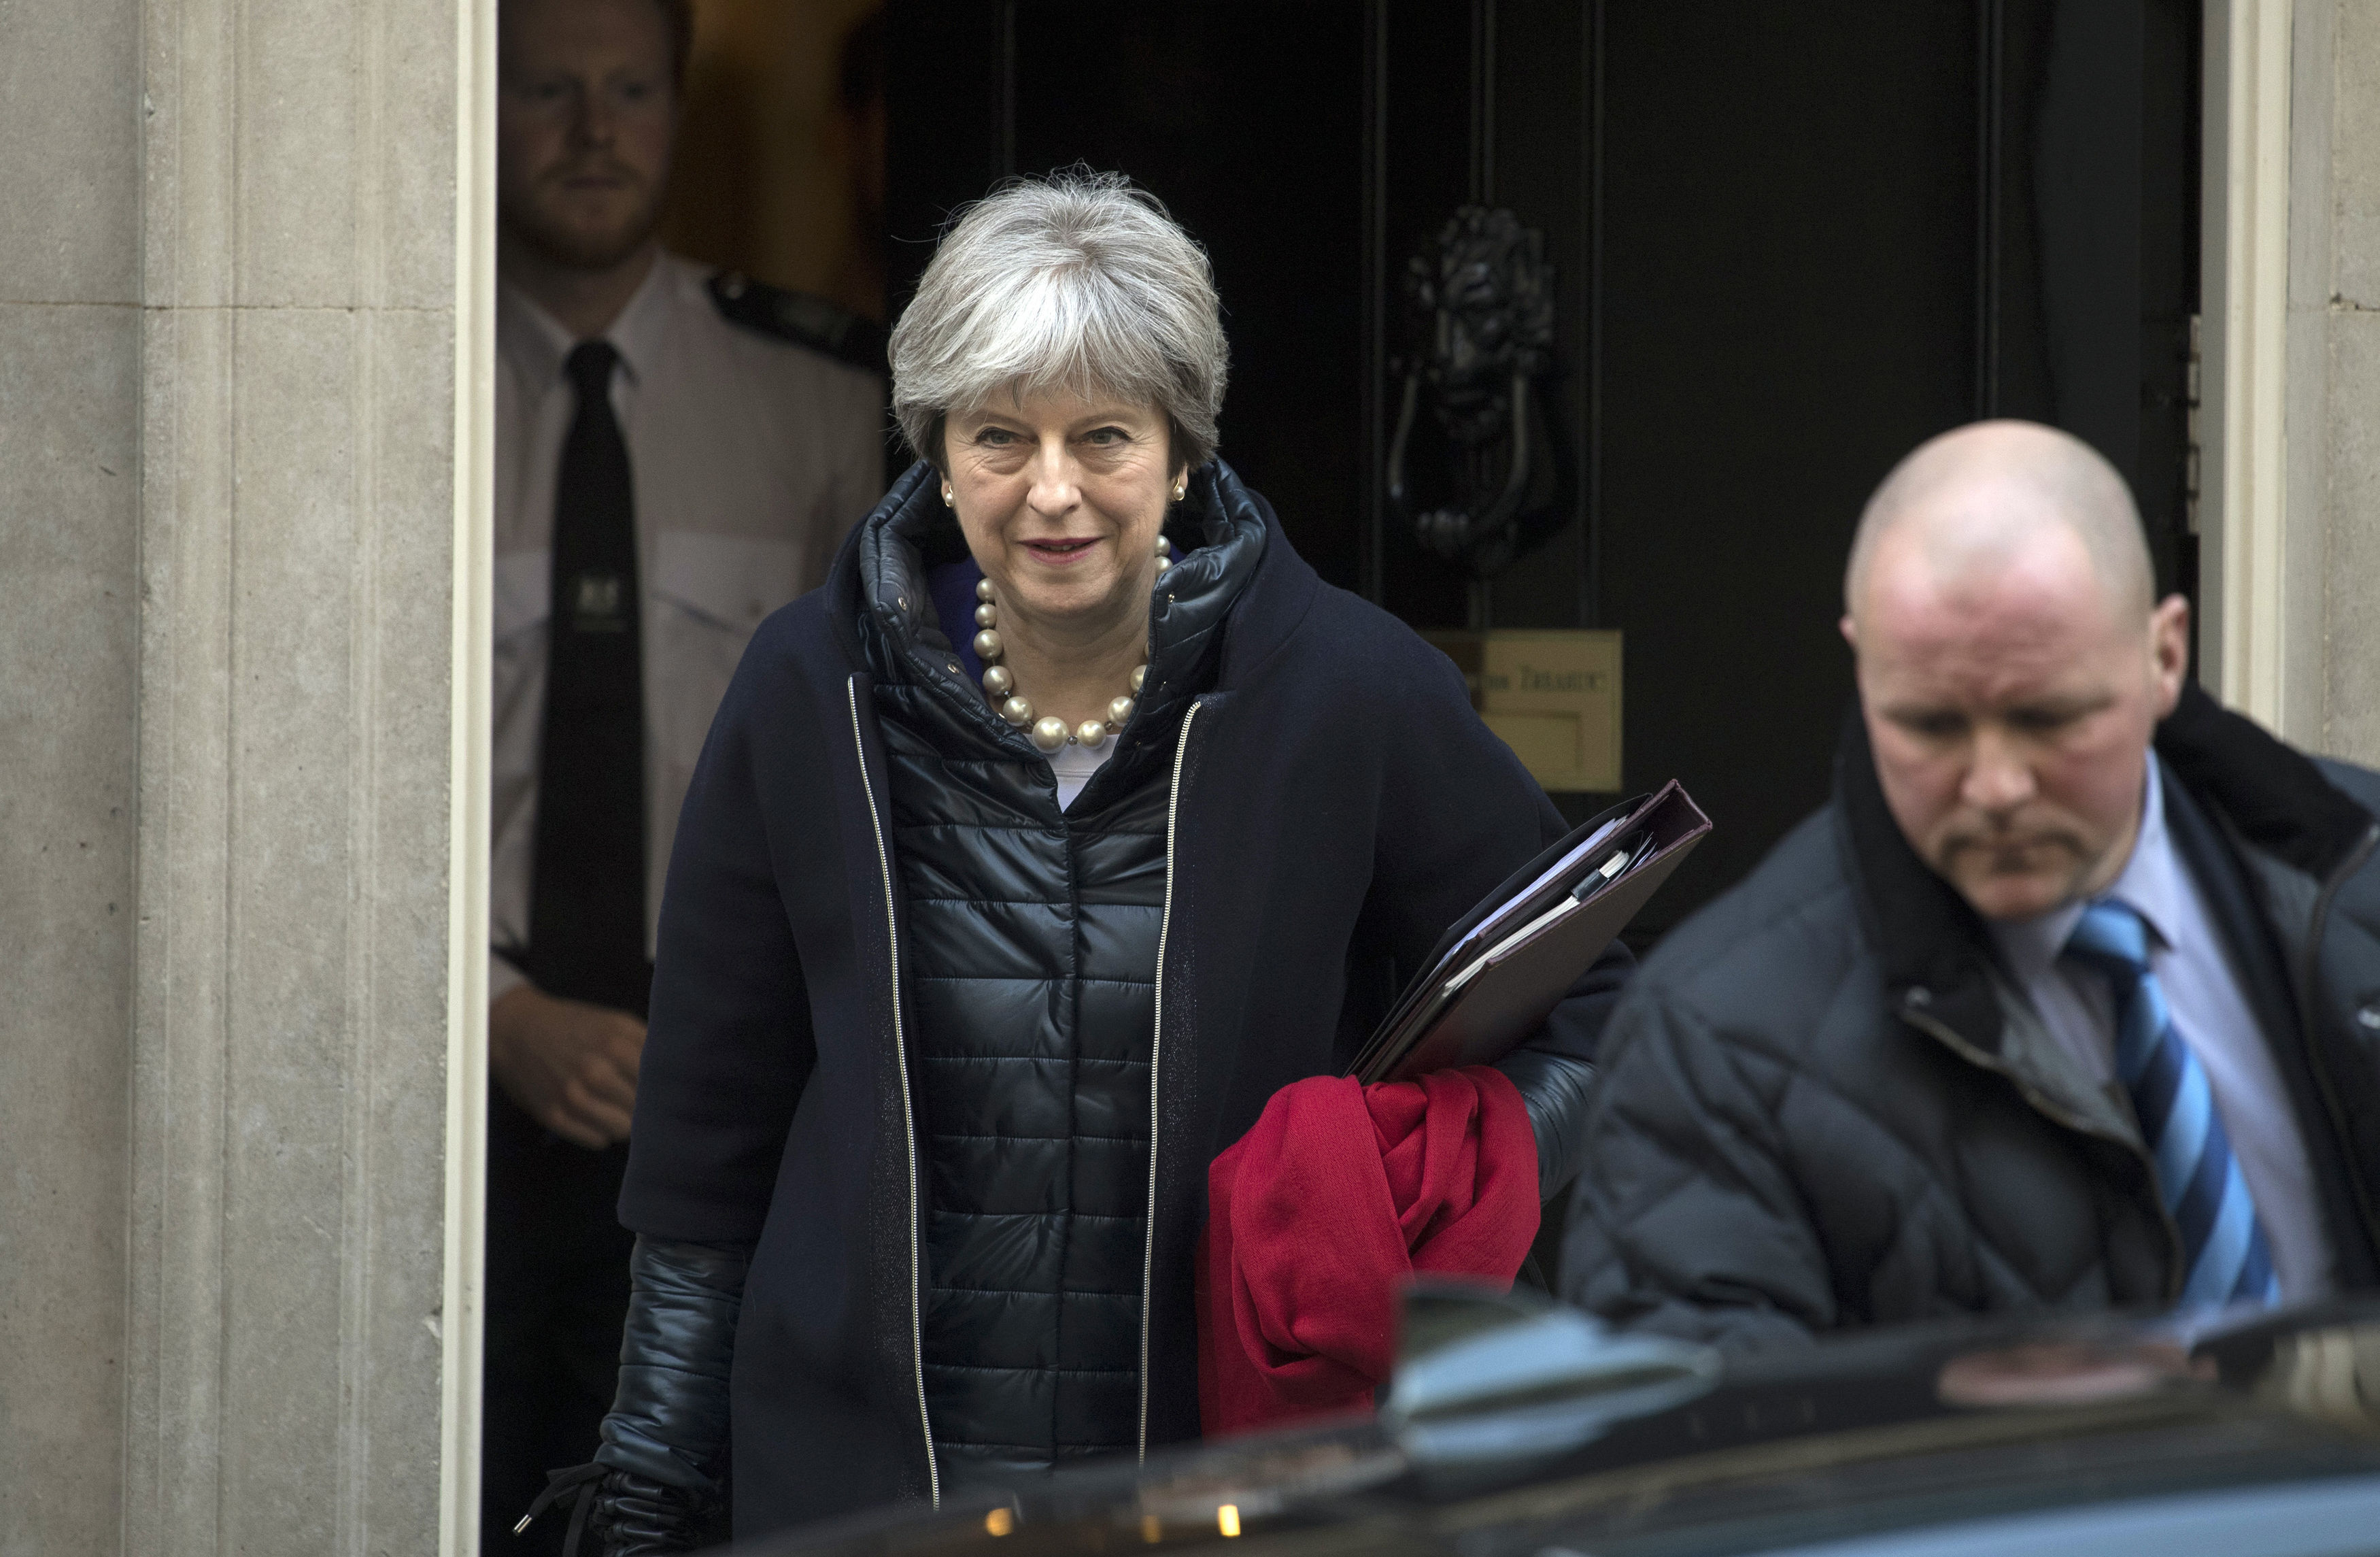 Theresa May announces review into British newspaper industry to safeguard free press